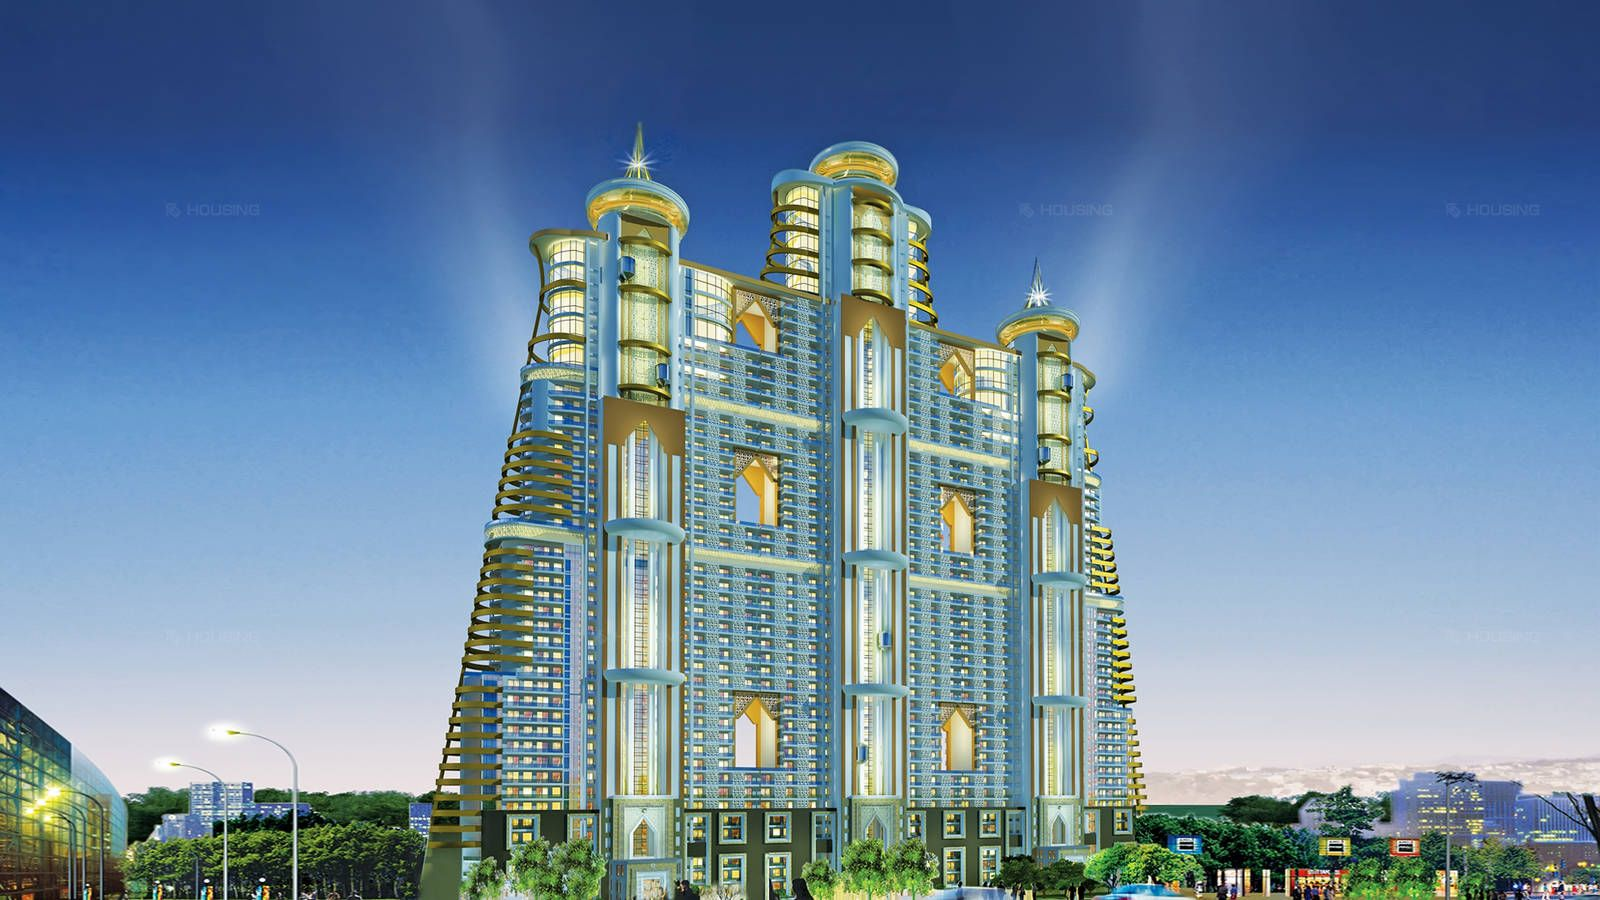 Raheja Revanta is #luxury residential project which offers the 3 BHK and 4 BHK independent floors. The project is located at Sector-78, #Gurgaon.  This project offers 3 BHK and 4 BHK independent #floors in the area size of 2074 square feet to 3533 square feet.  Read more at  http://www.buyproperty.com/raheja-revanta-sector-78-gurgaon-pid222319